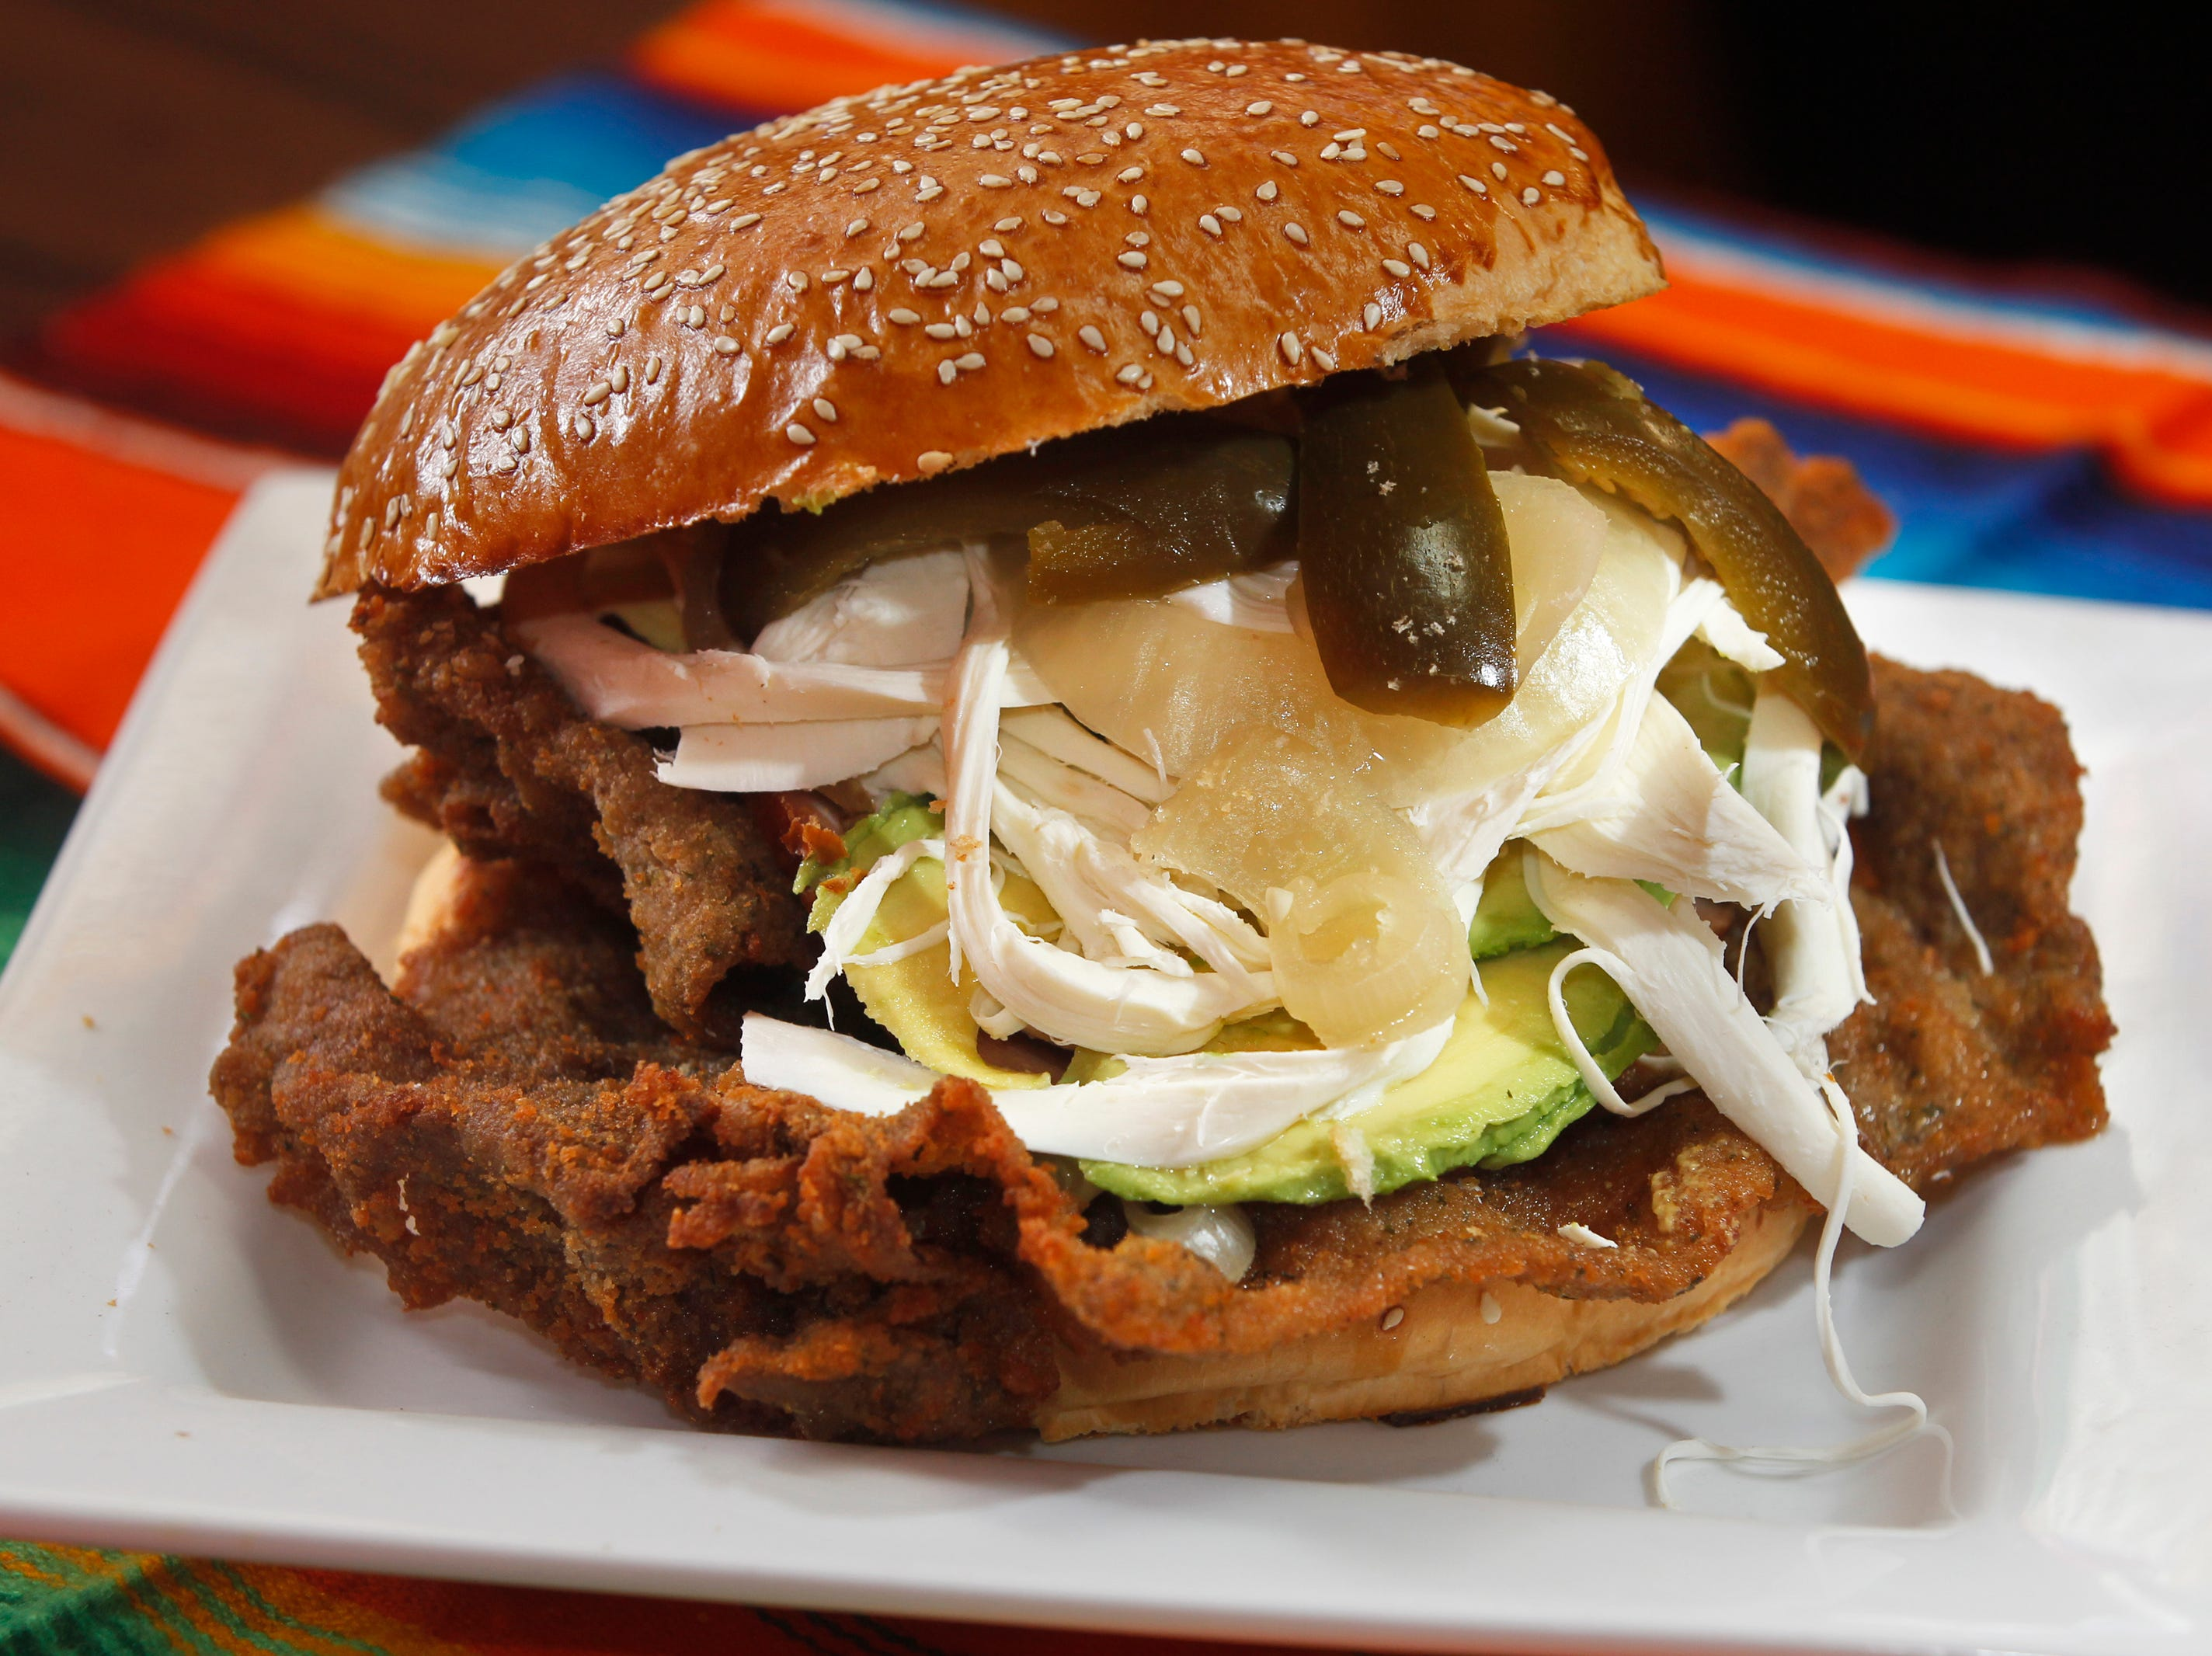 The cemita poblana starts with a seeded roll the size of a plate, and hold thin cuts of breaded chicken or beef, cheese, avocado and more.